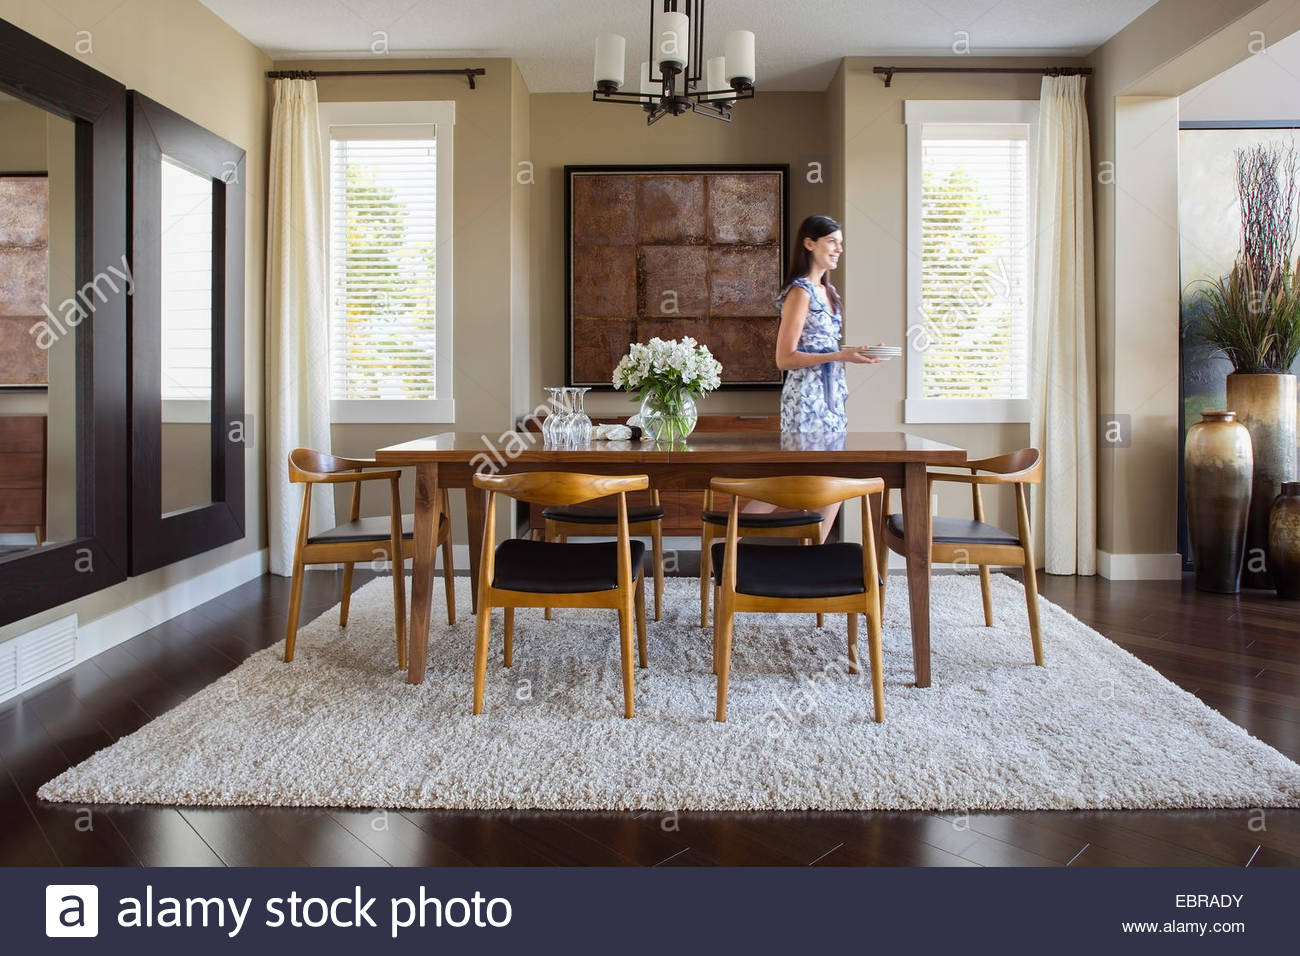 Woman setting table in dining room - Stock Image